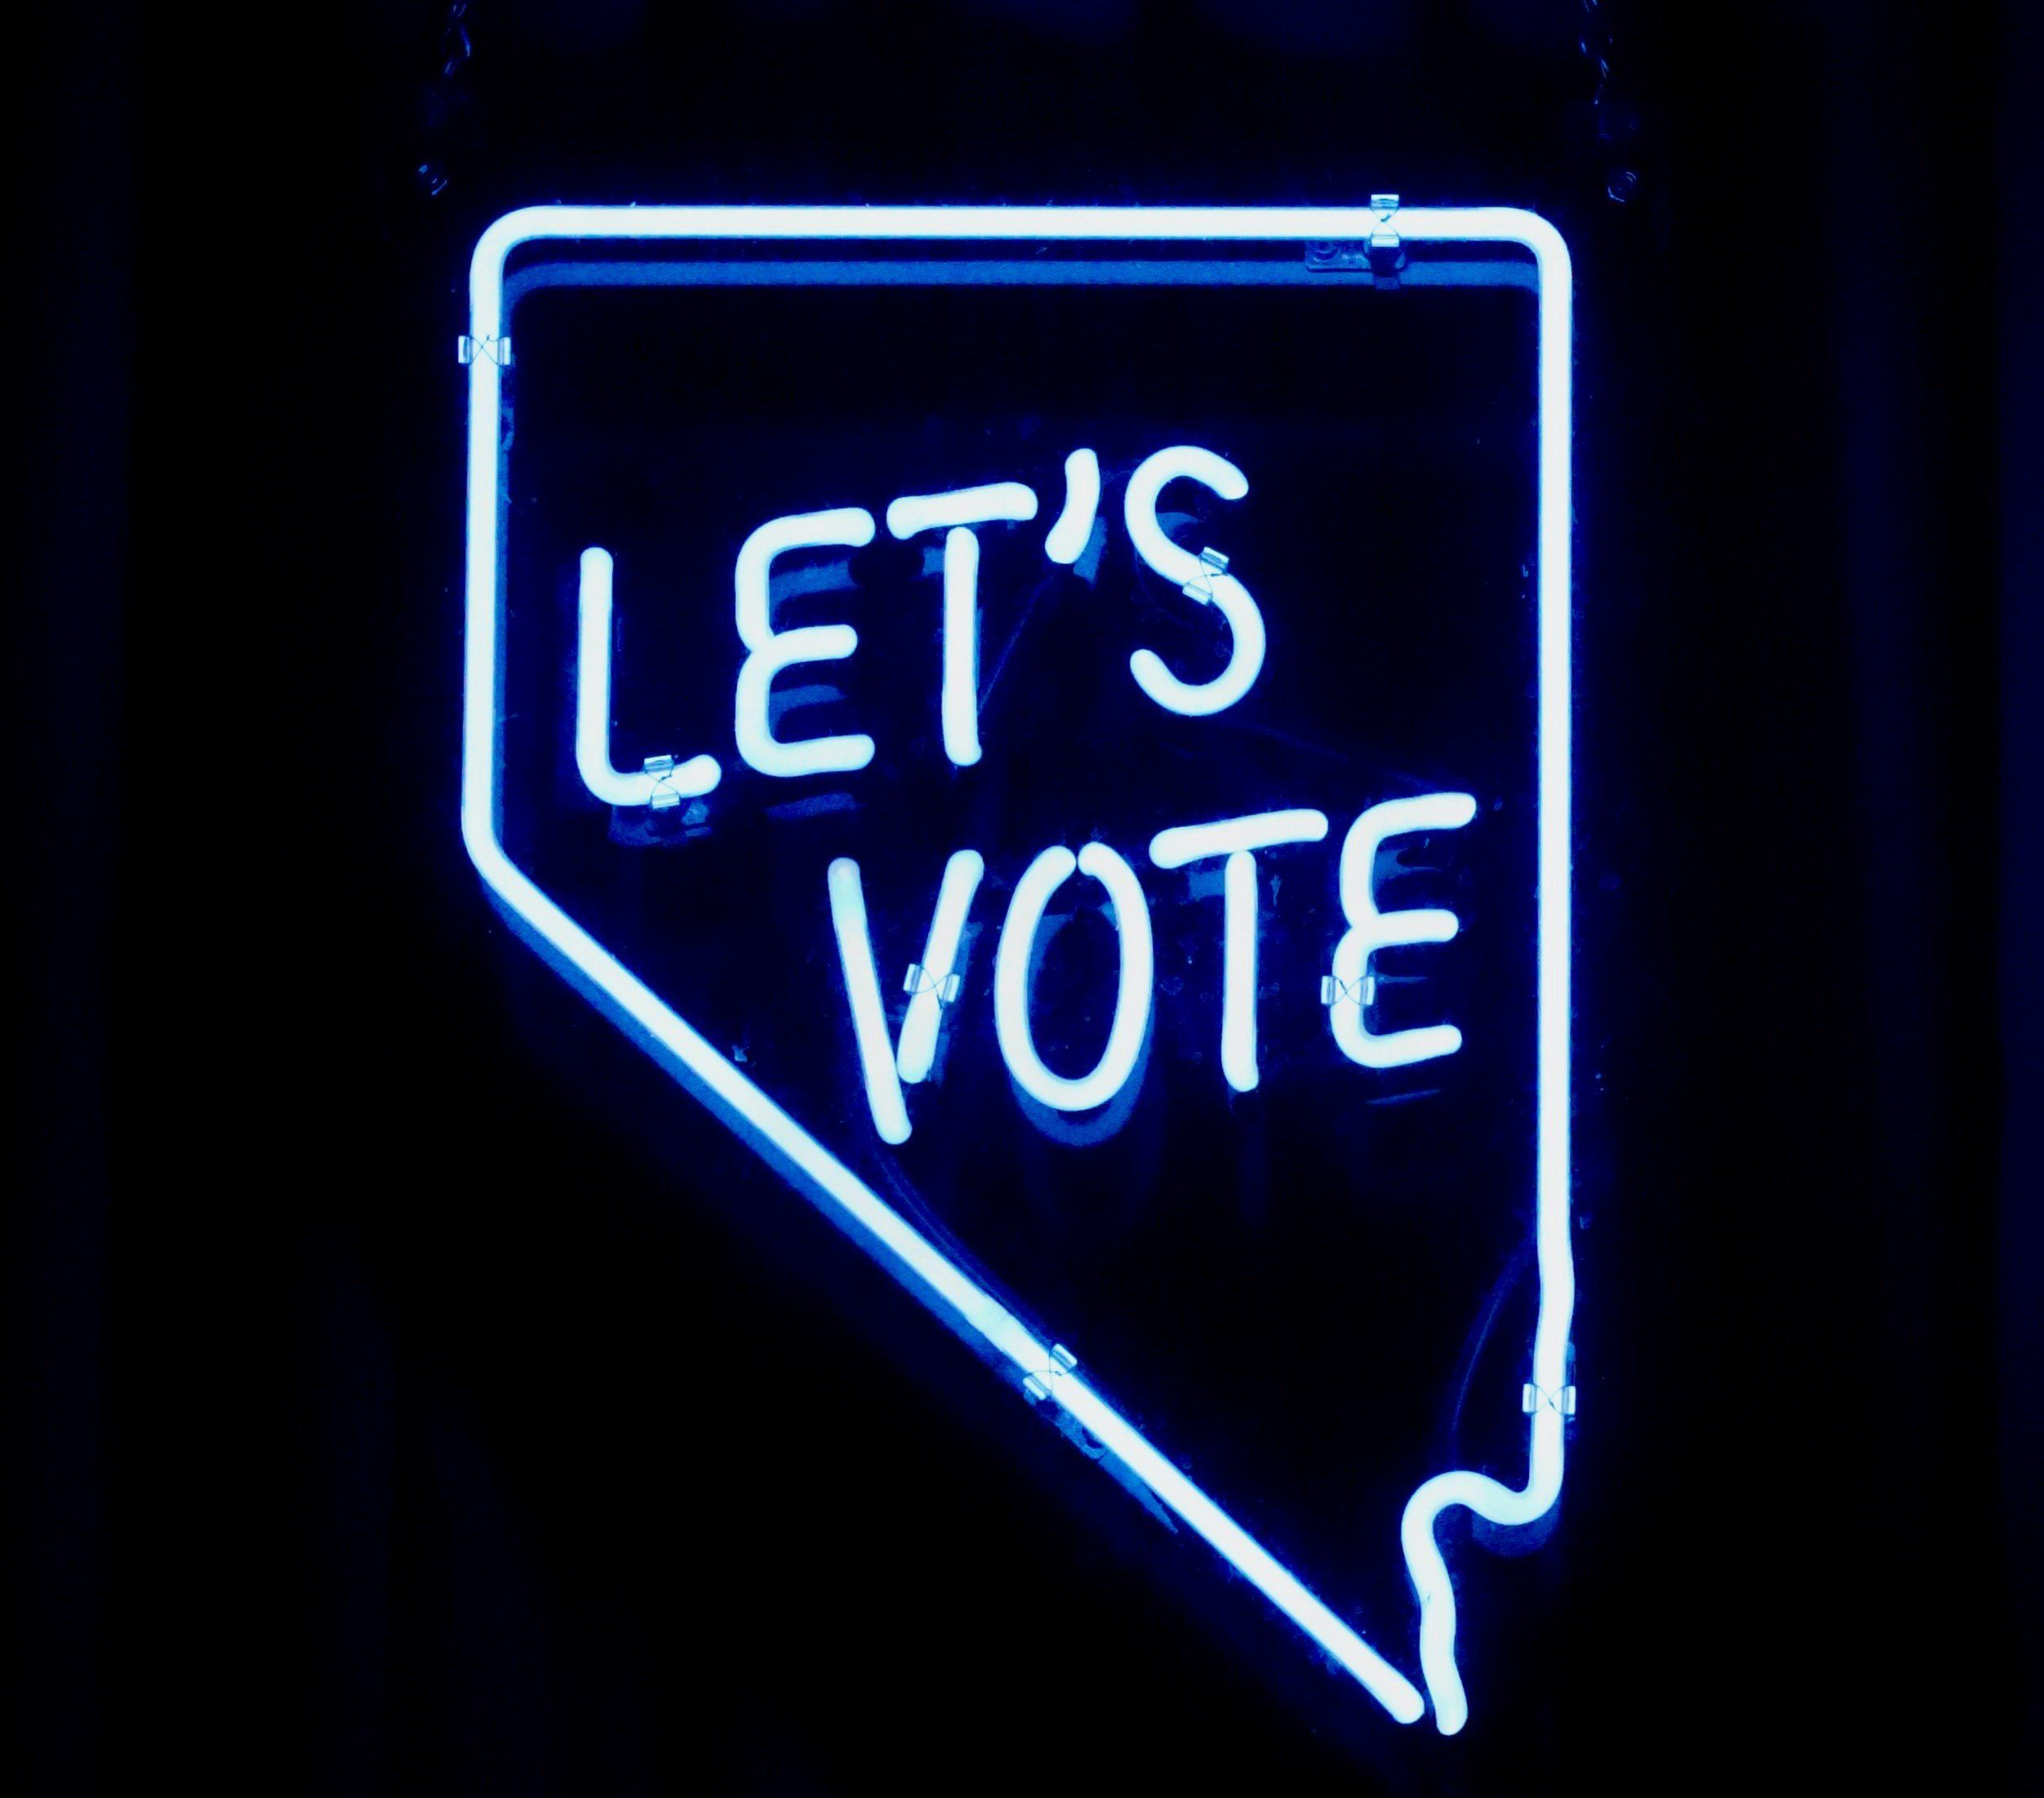 Image showing a neon sign that says Let's Vote